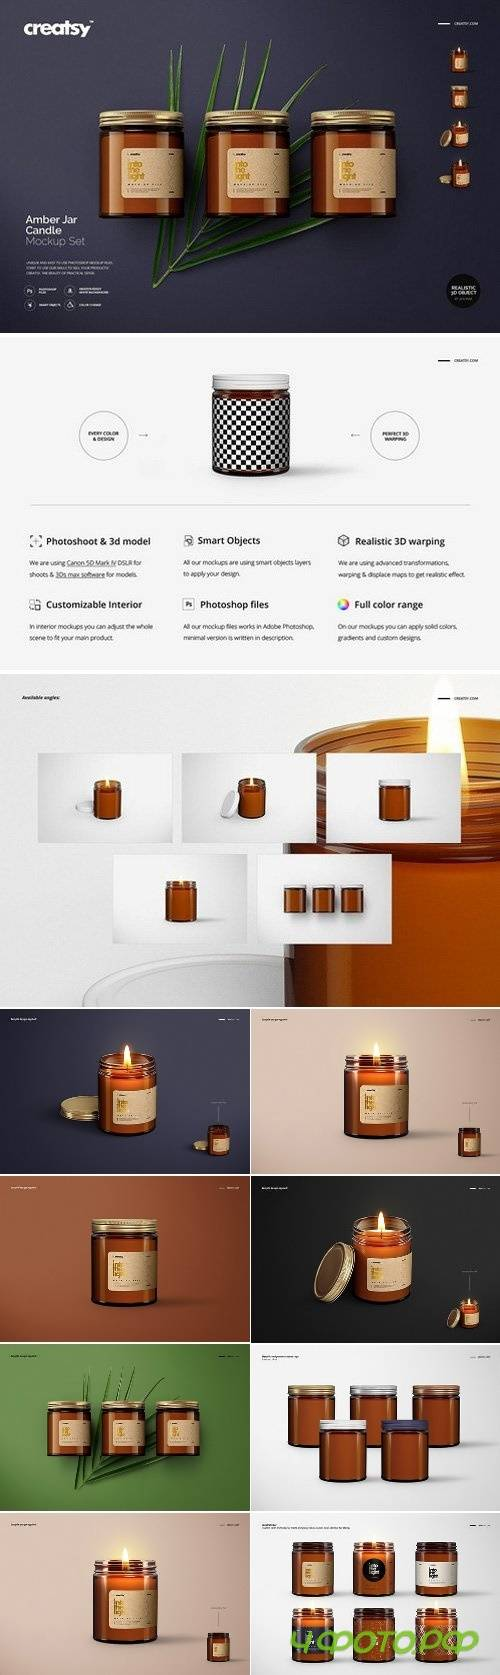 Amber Jar Candle Mockup Set 2405116